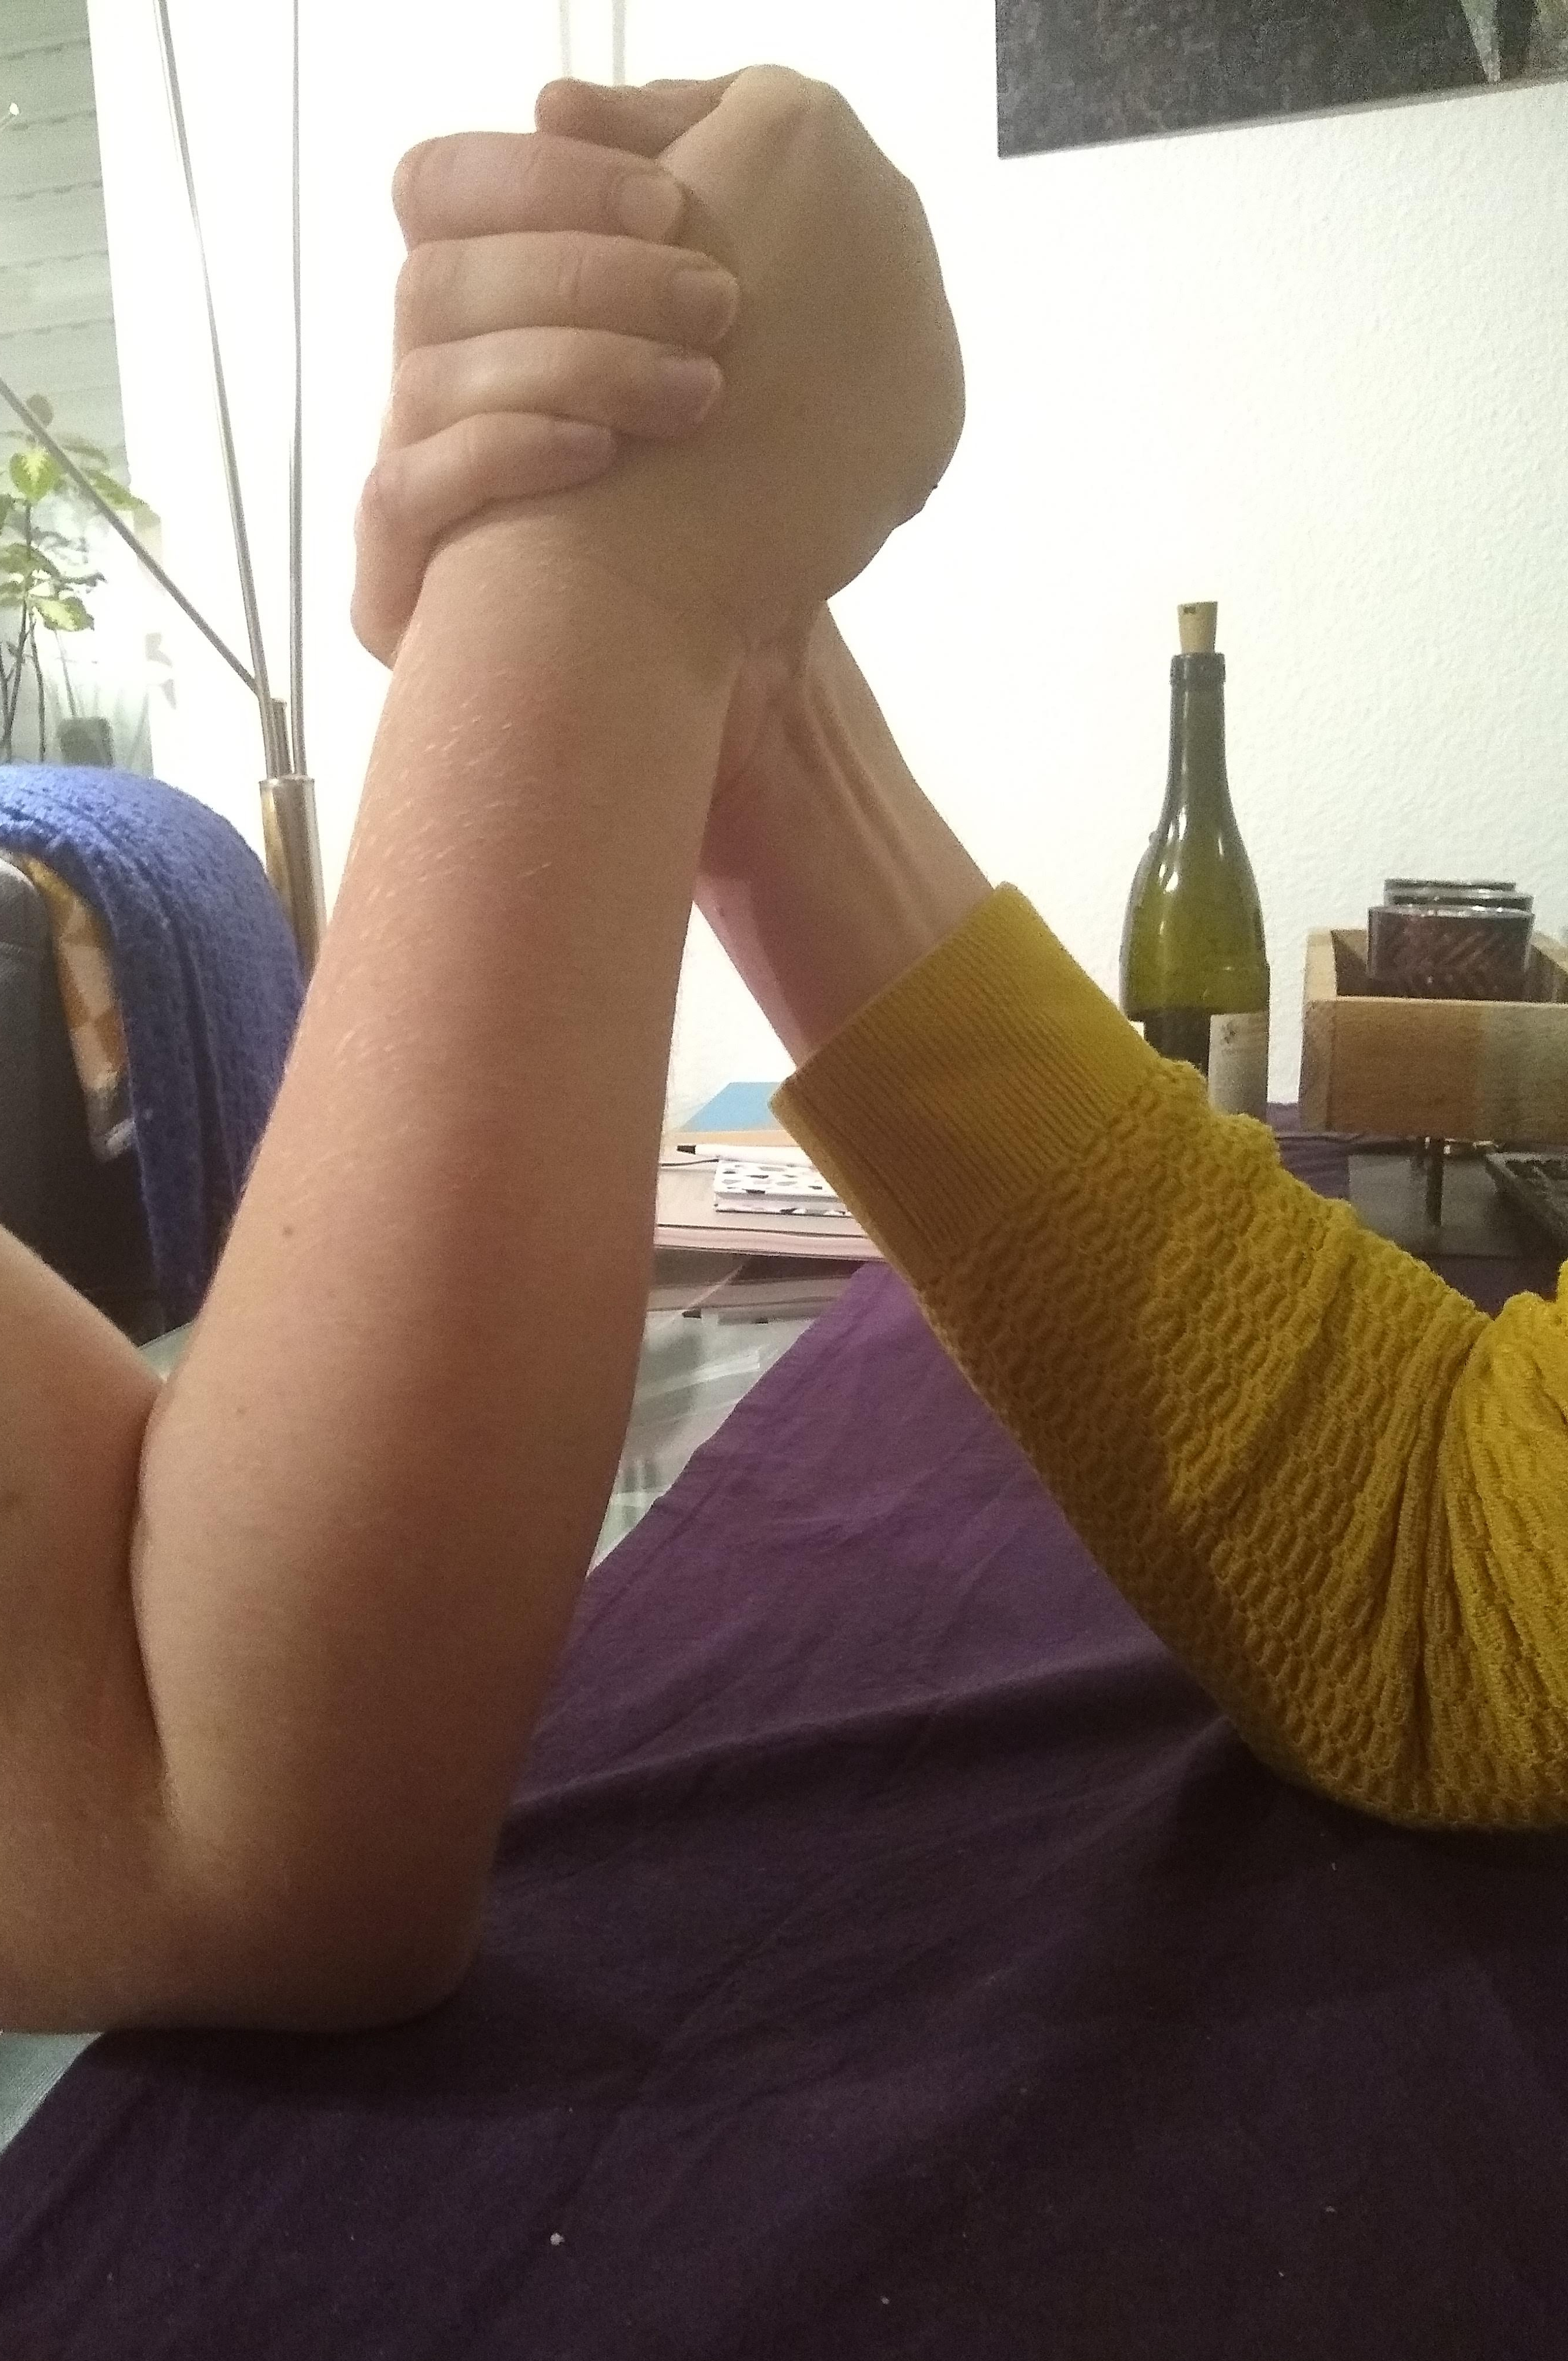 Two arms locked in an arm wrestle